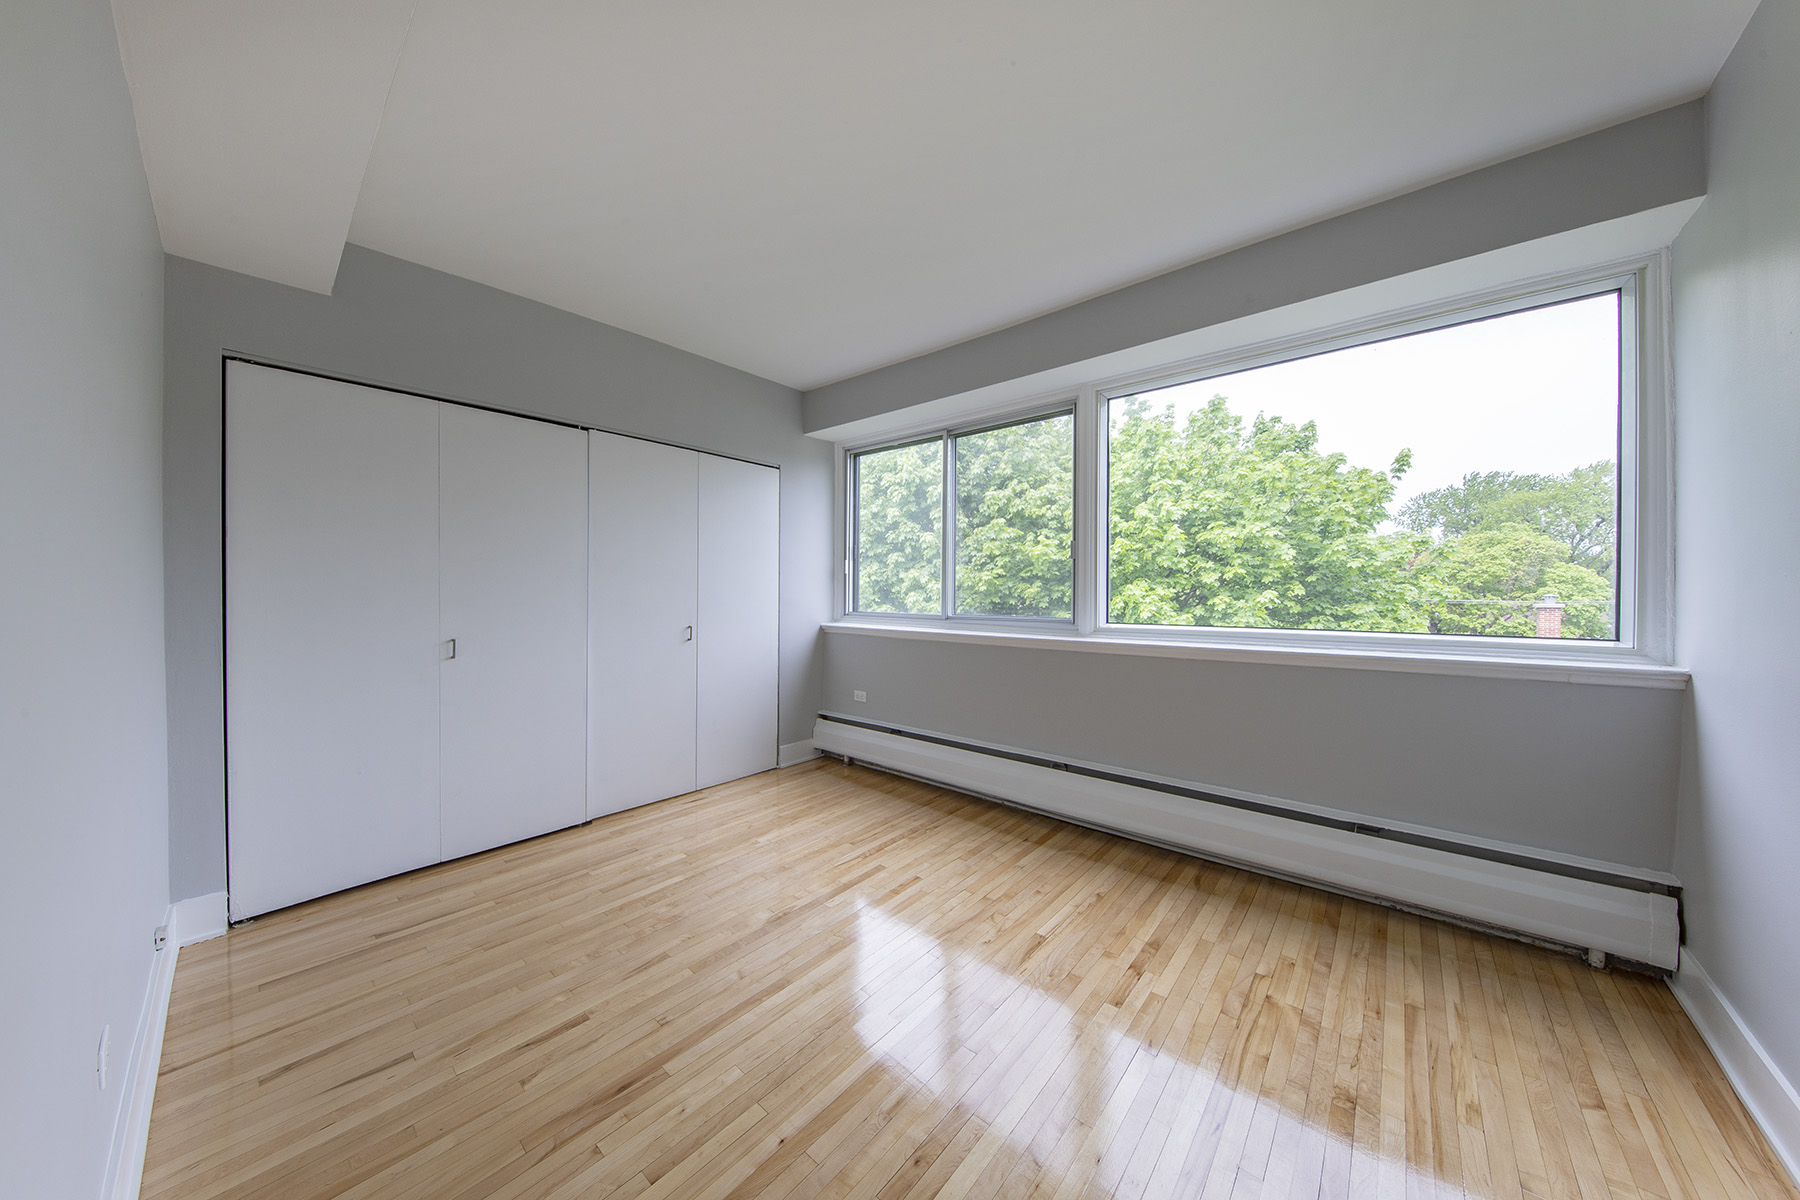 3 bedroom Apartments for rent in Cote-St-Luc at 5765 Cote St-Luc - Photo 04 - RentQuebecApartments – L401534